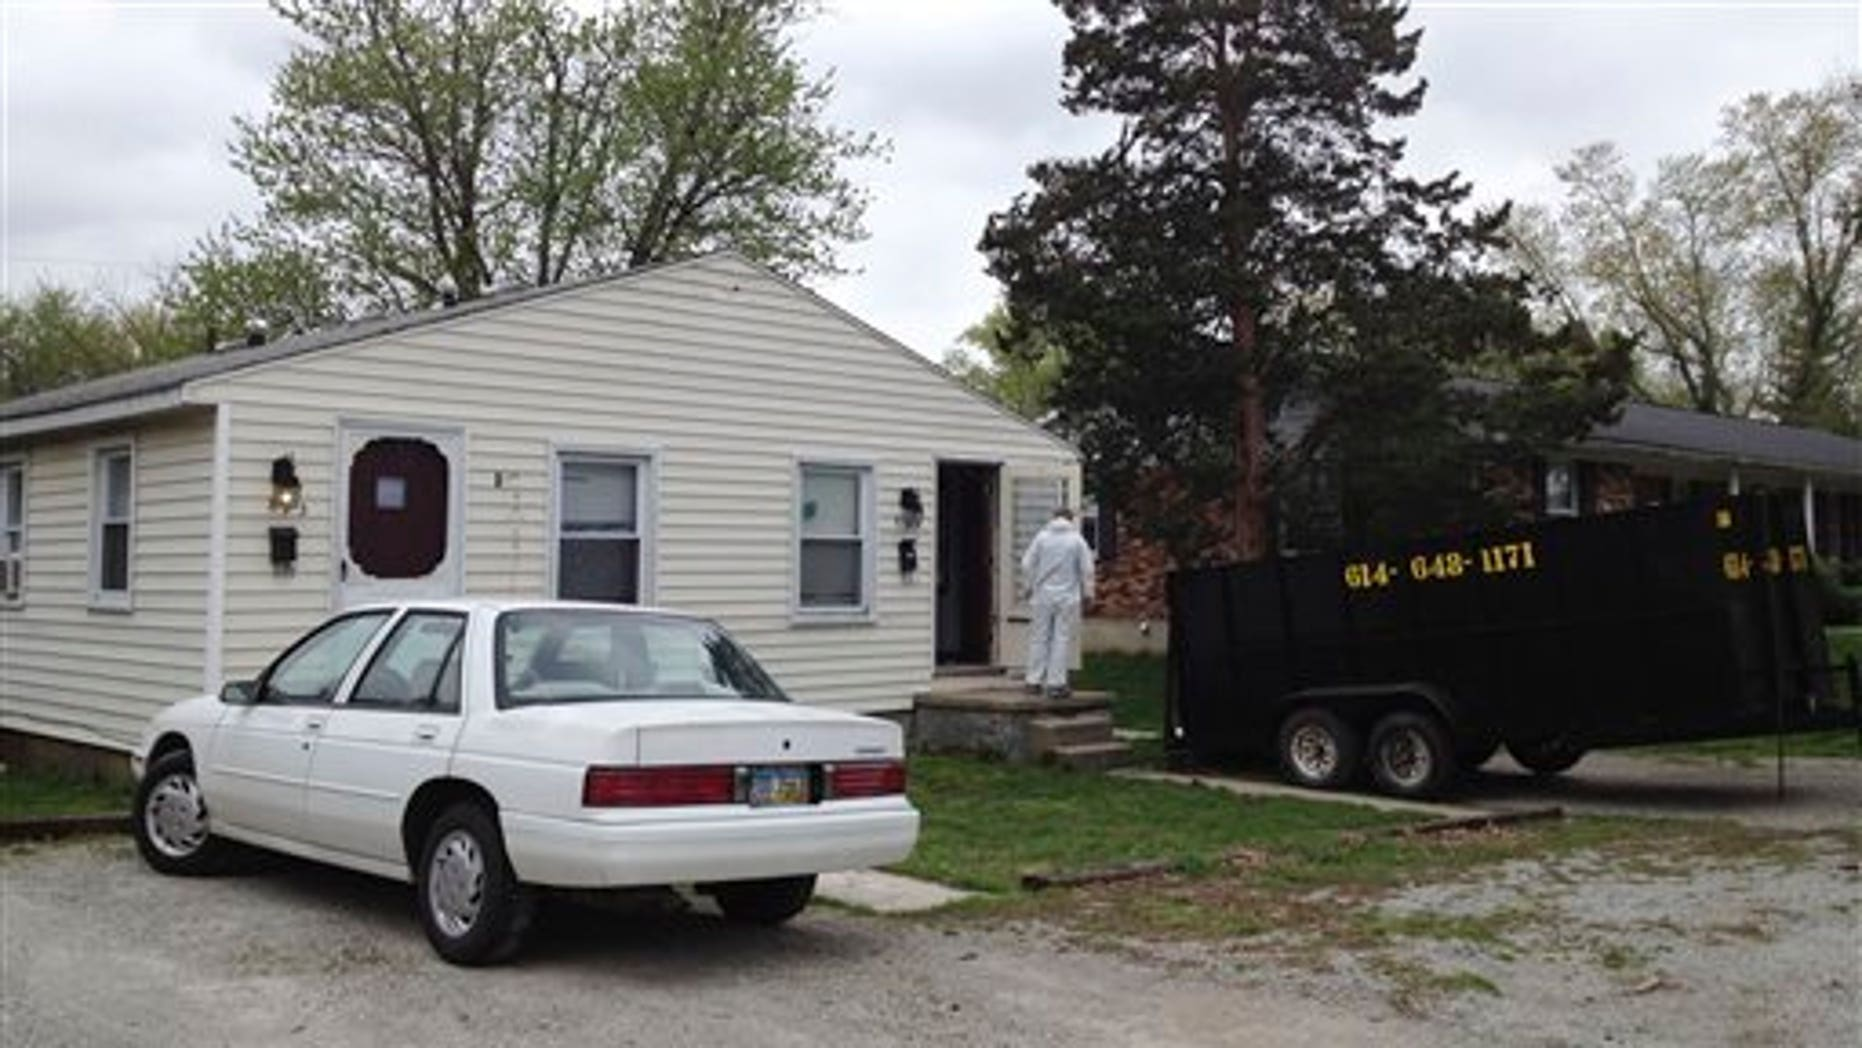 April 3: Workers clean out a home where 21-year-old Jessica Rae Sacco was killed Friday in Urbana, Ohio. A $100,000 bond has been set for 25-year-old Matthew Puccio, who is accused of stabbing and suffocating Sacco, then dismembering her body in their bathtub. Some of Sacco's remains were found in the apartment on Friday, March 30. Other body parts were found miles away in Kentucky.